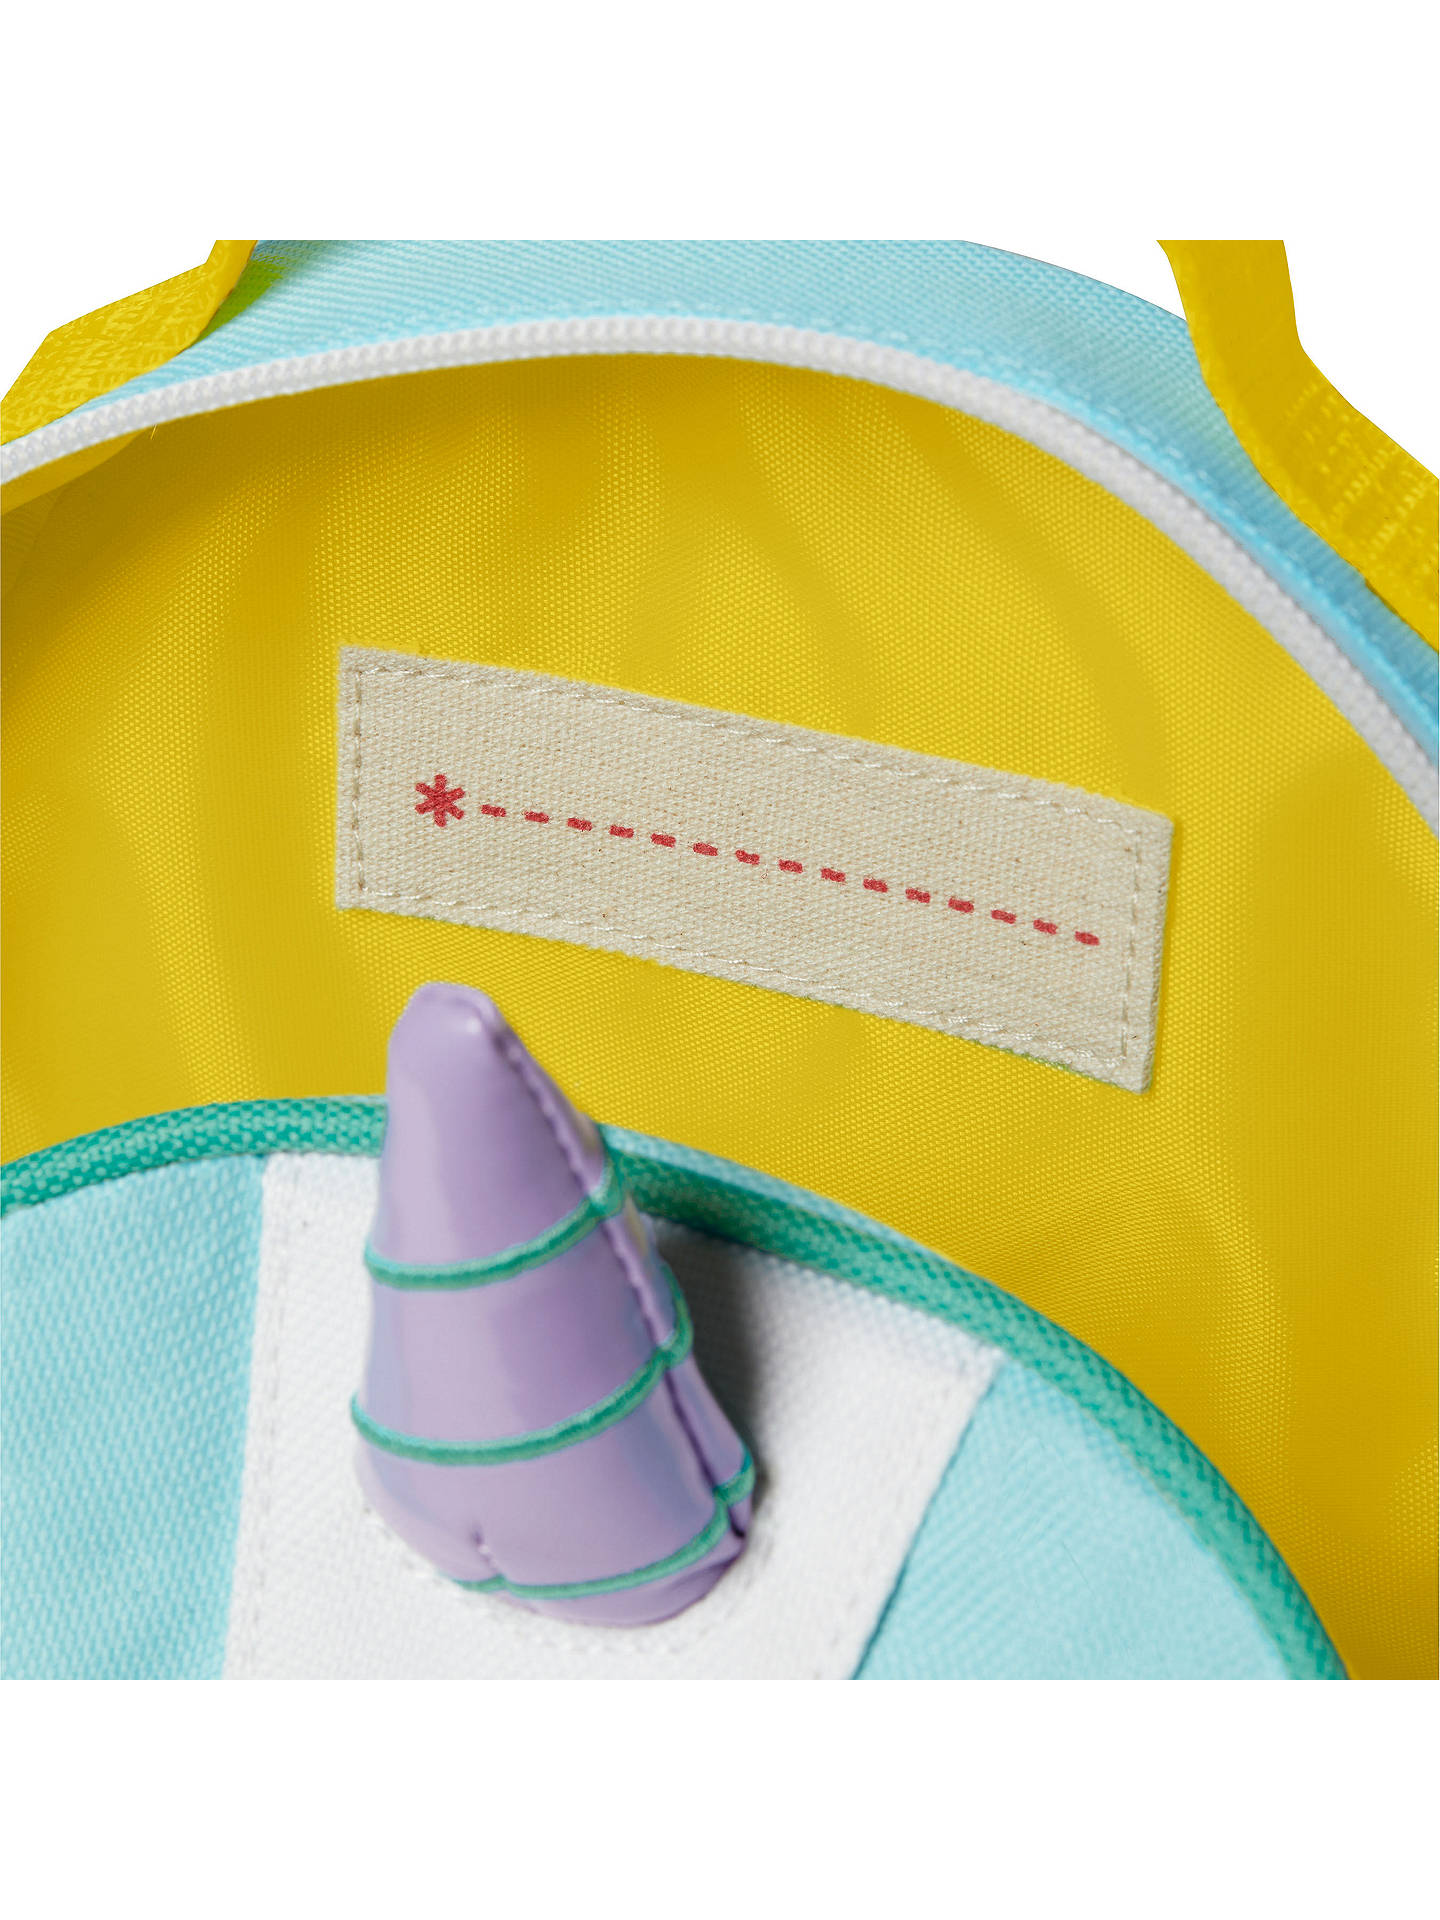 Buy Skip Hop Zoolet Toddler Backpack, Unicorn Online at johnlewis.com